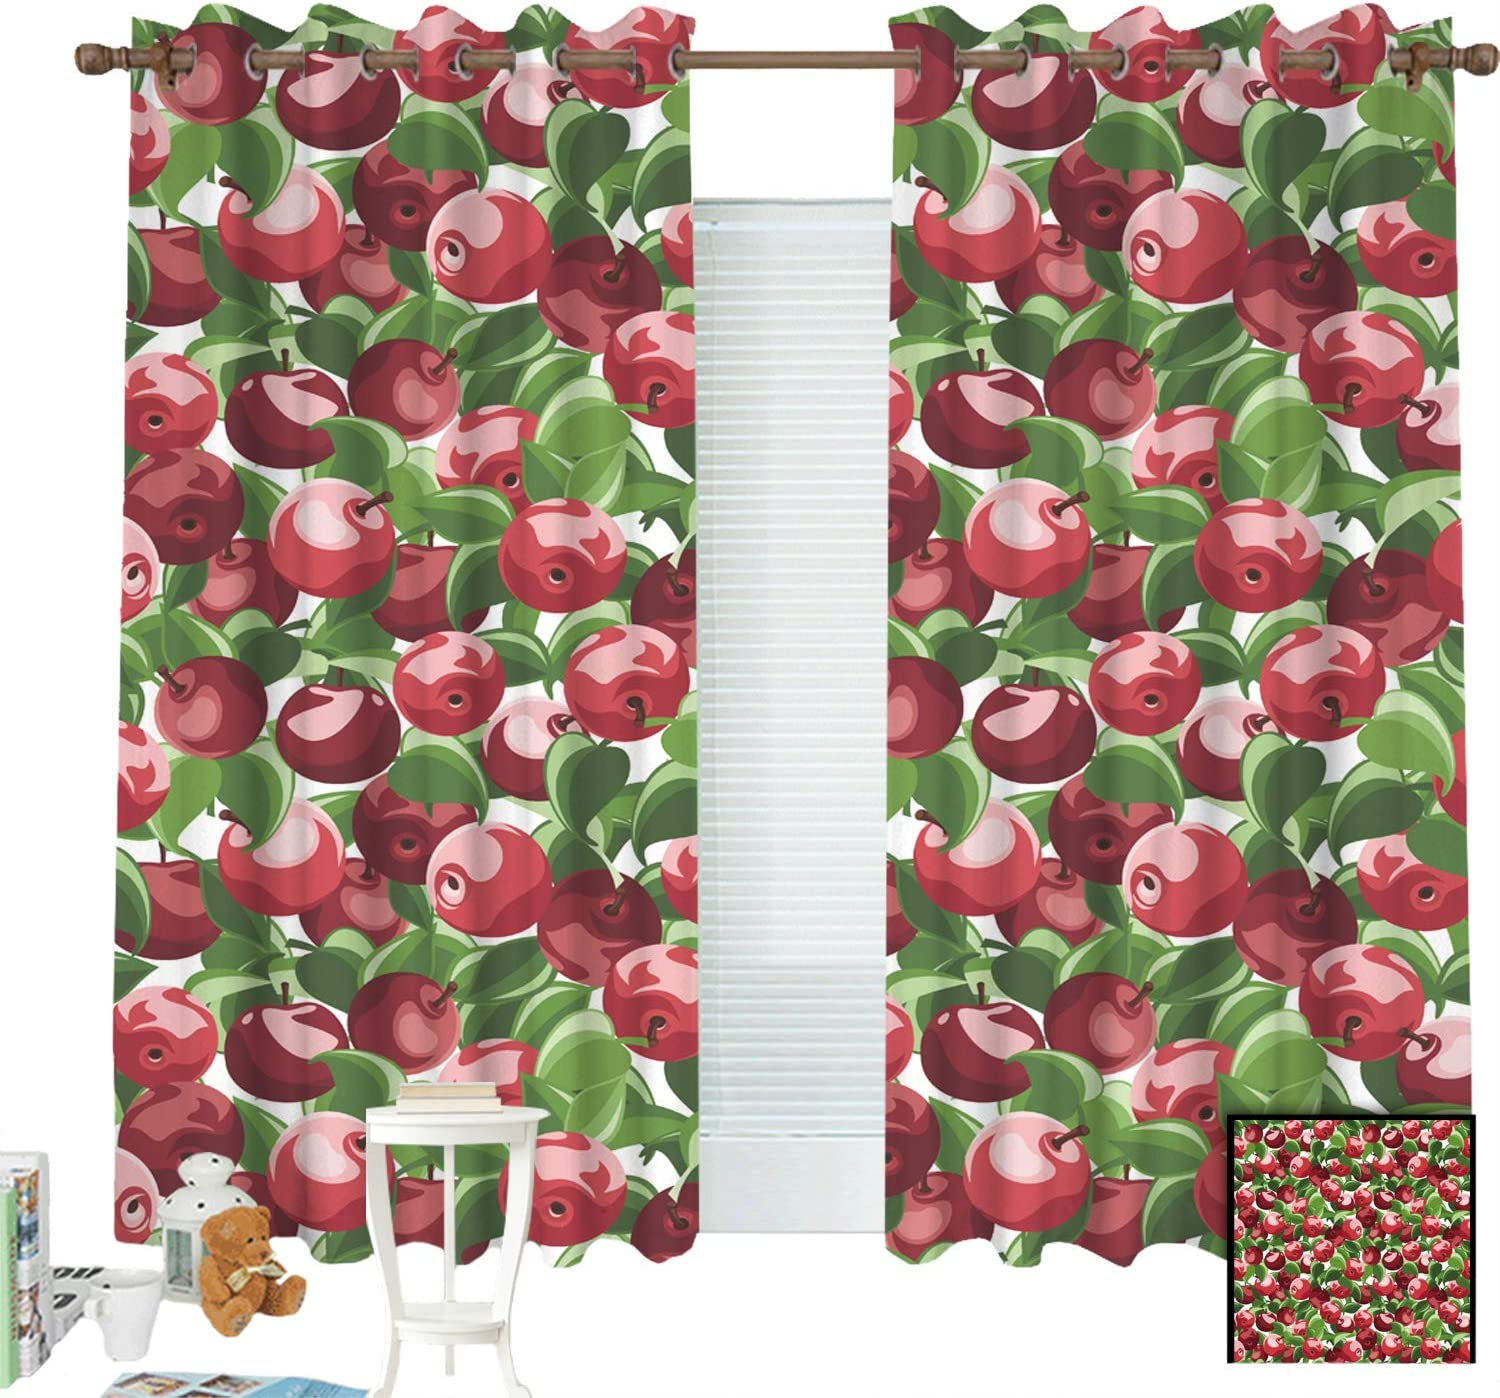 ZXAWT Curtains Grommet Top Blackout Curtains Thermal Insulated Curtain for Bedroom and Kitchen Set of 2 Panels(Apple Group Drawing Oil Painting W 107